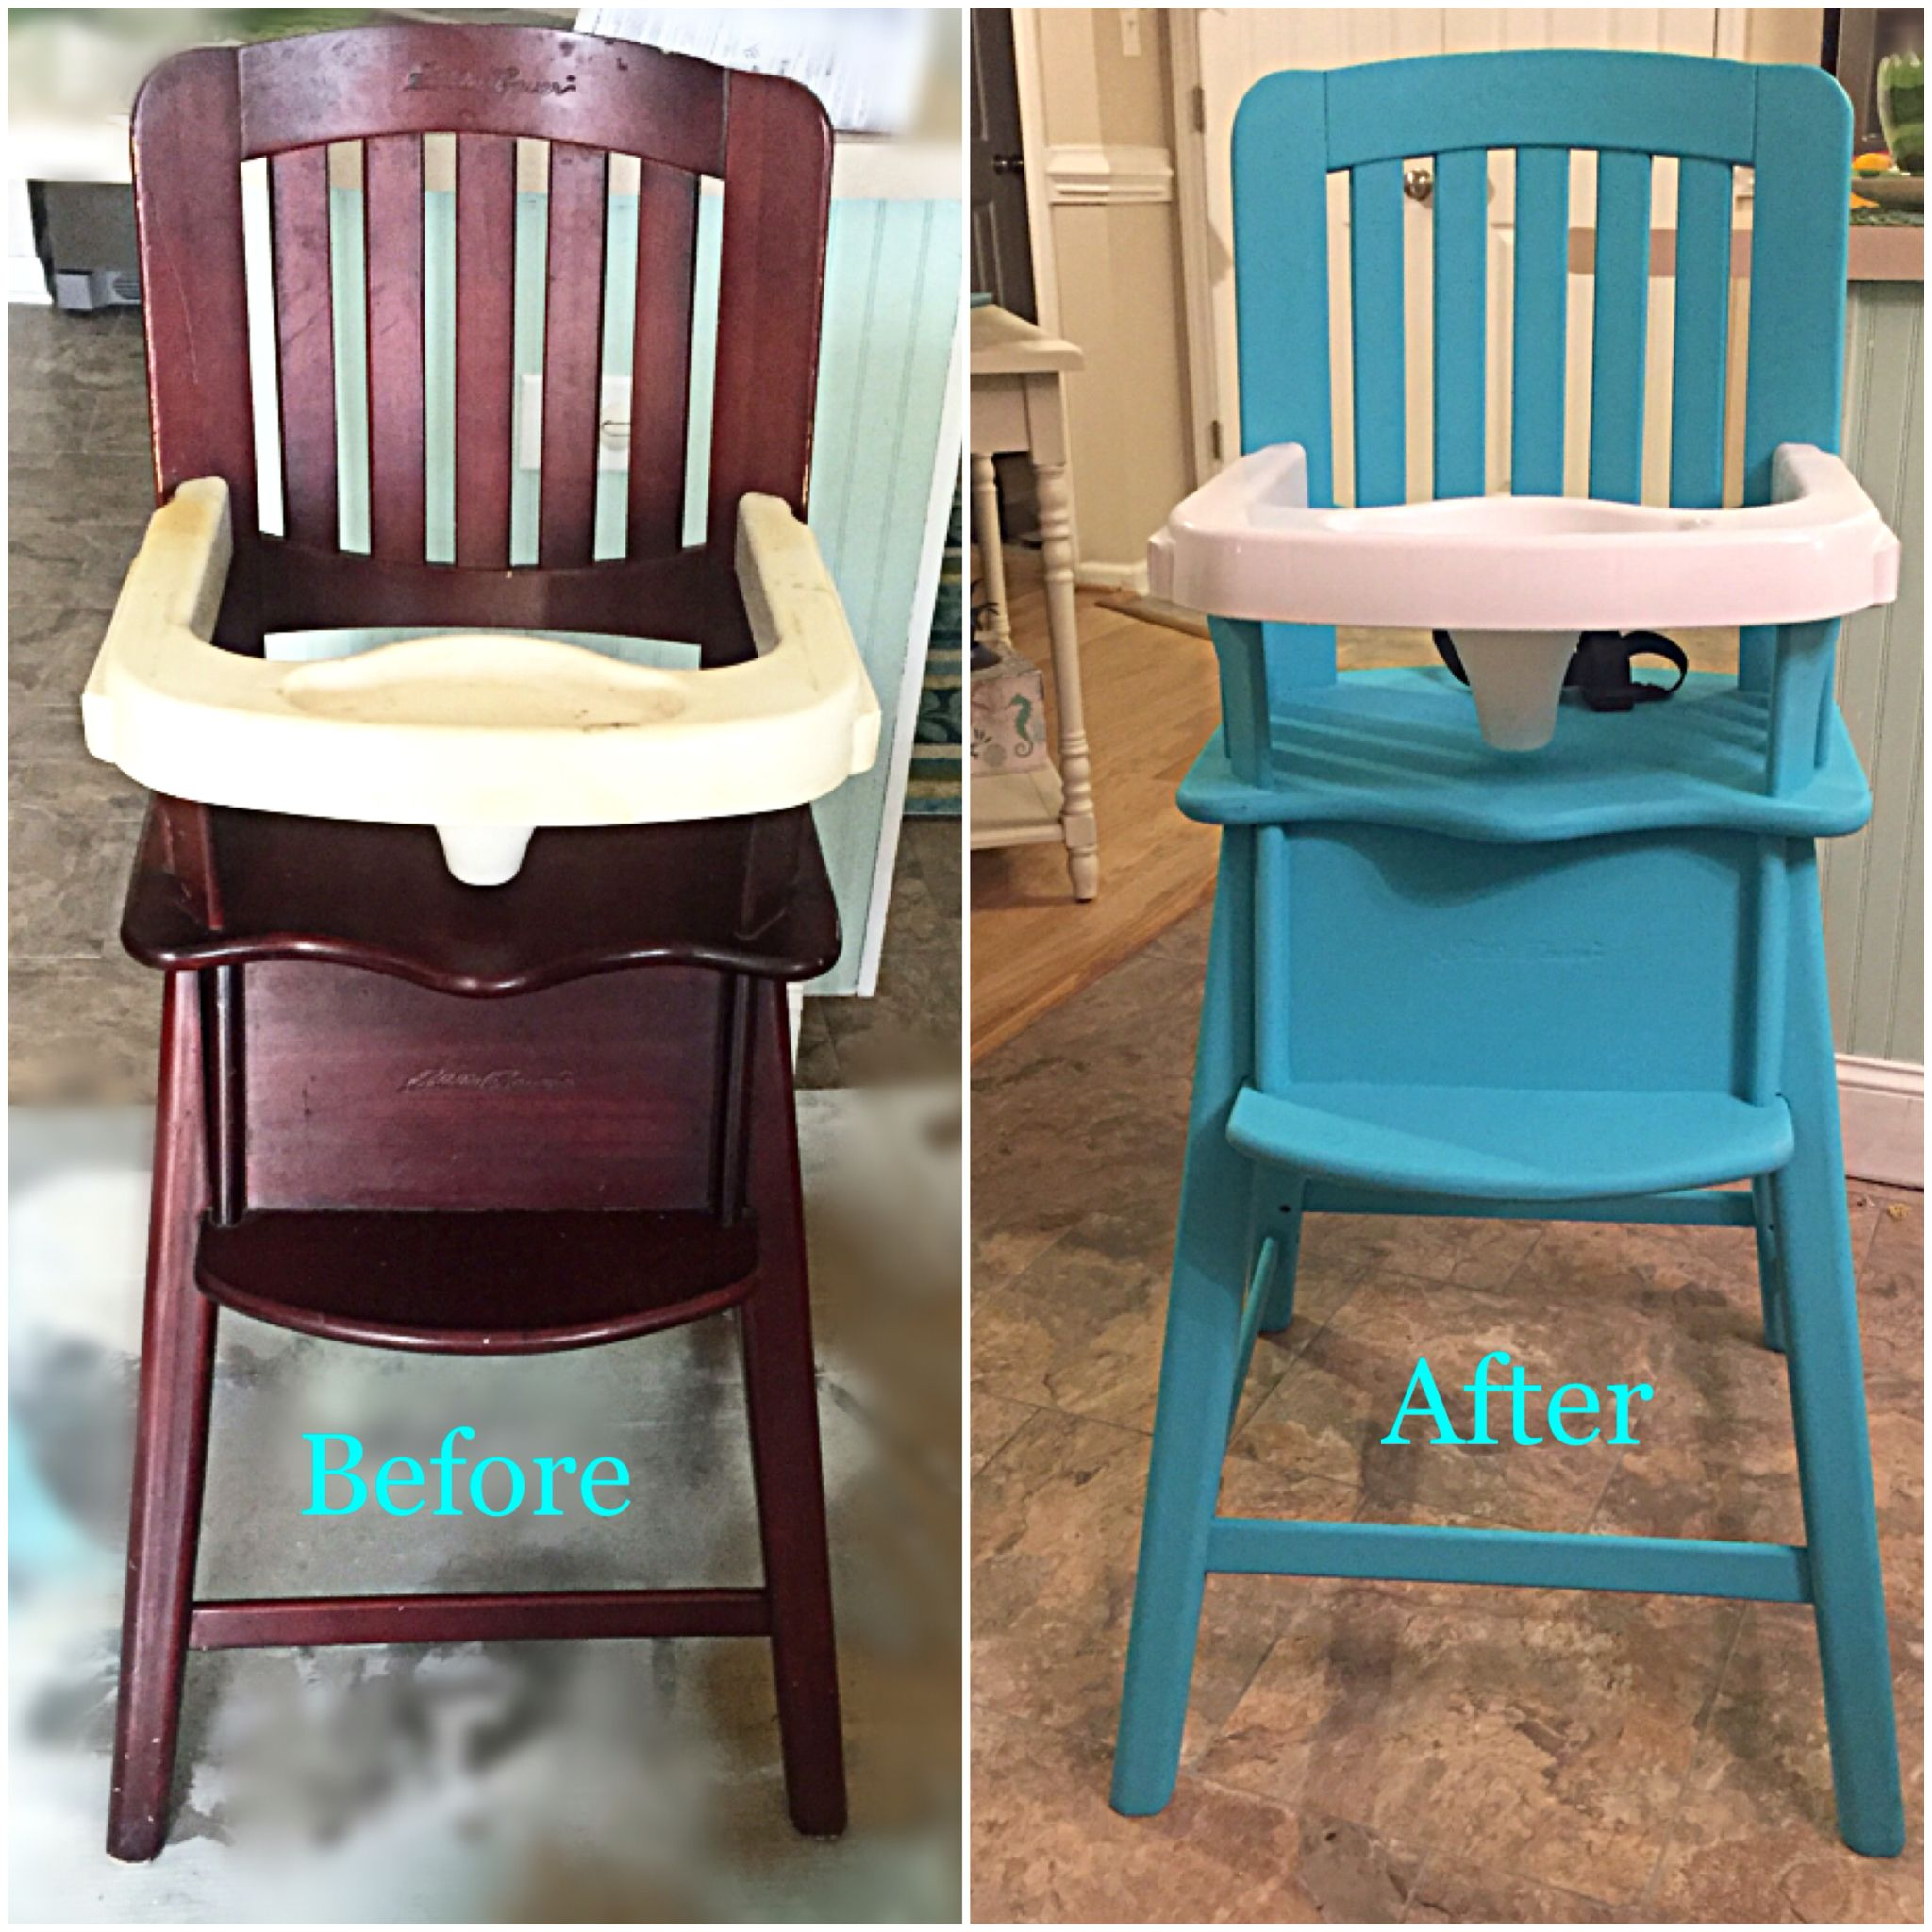 6b7133ad3f2 Reece's high chair Eddie Bauer high chair makeover with chalk paint ...